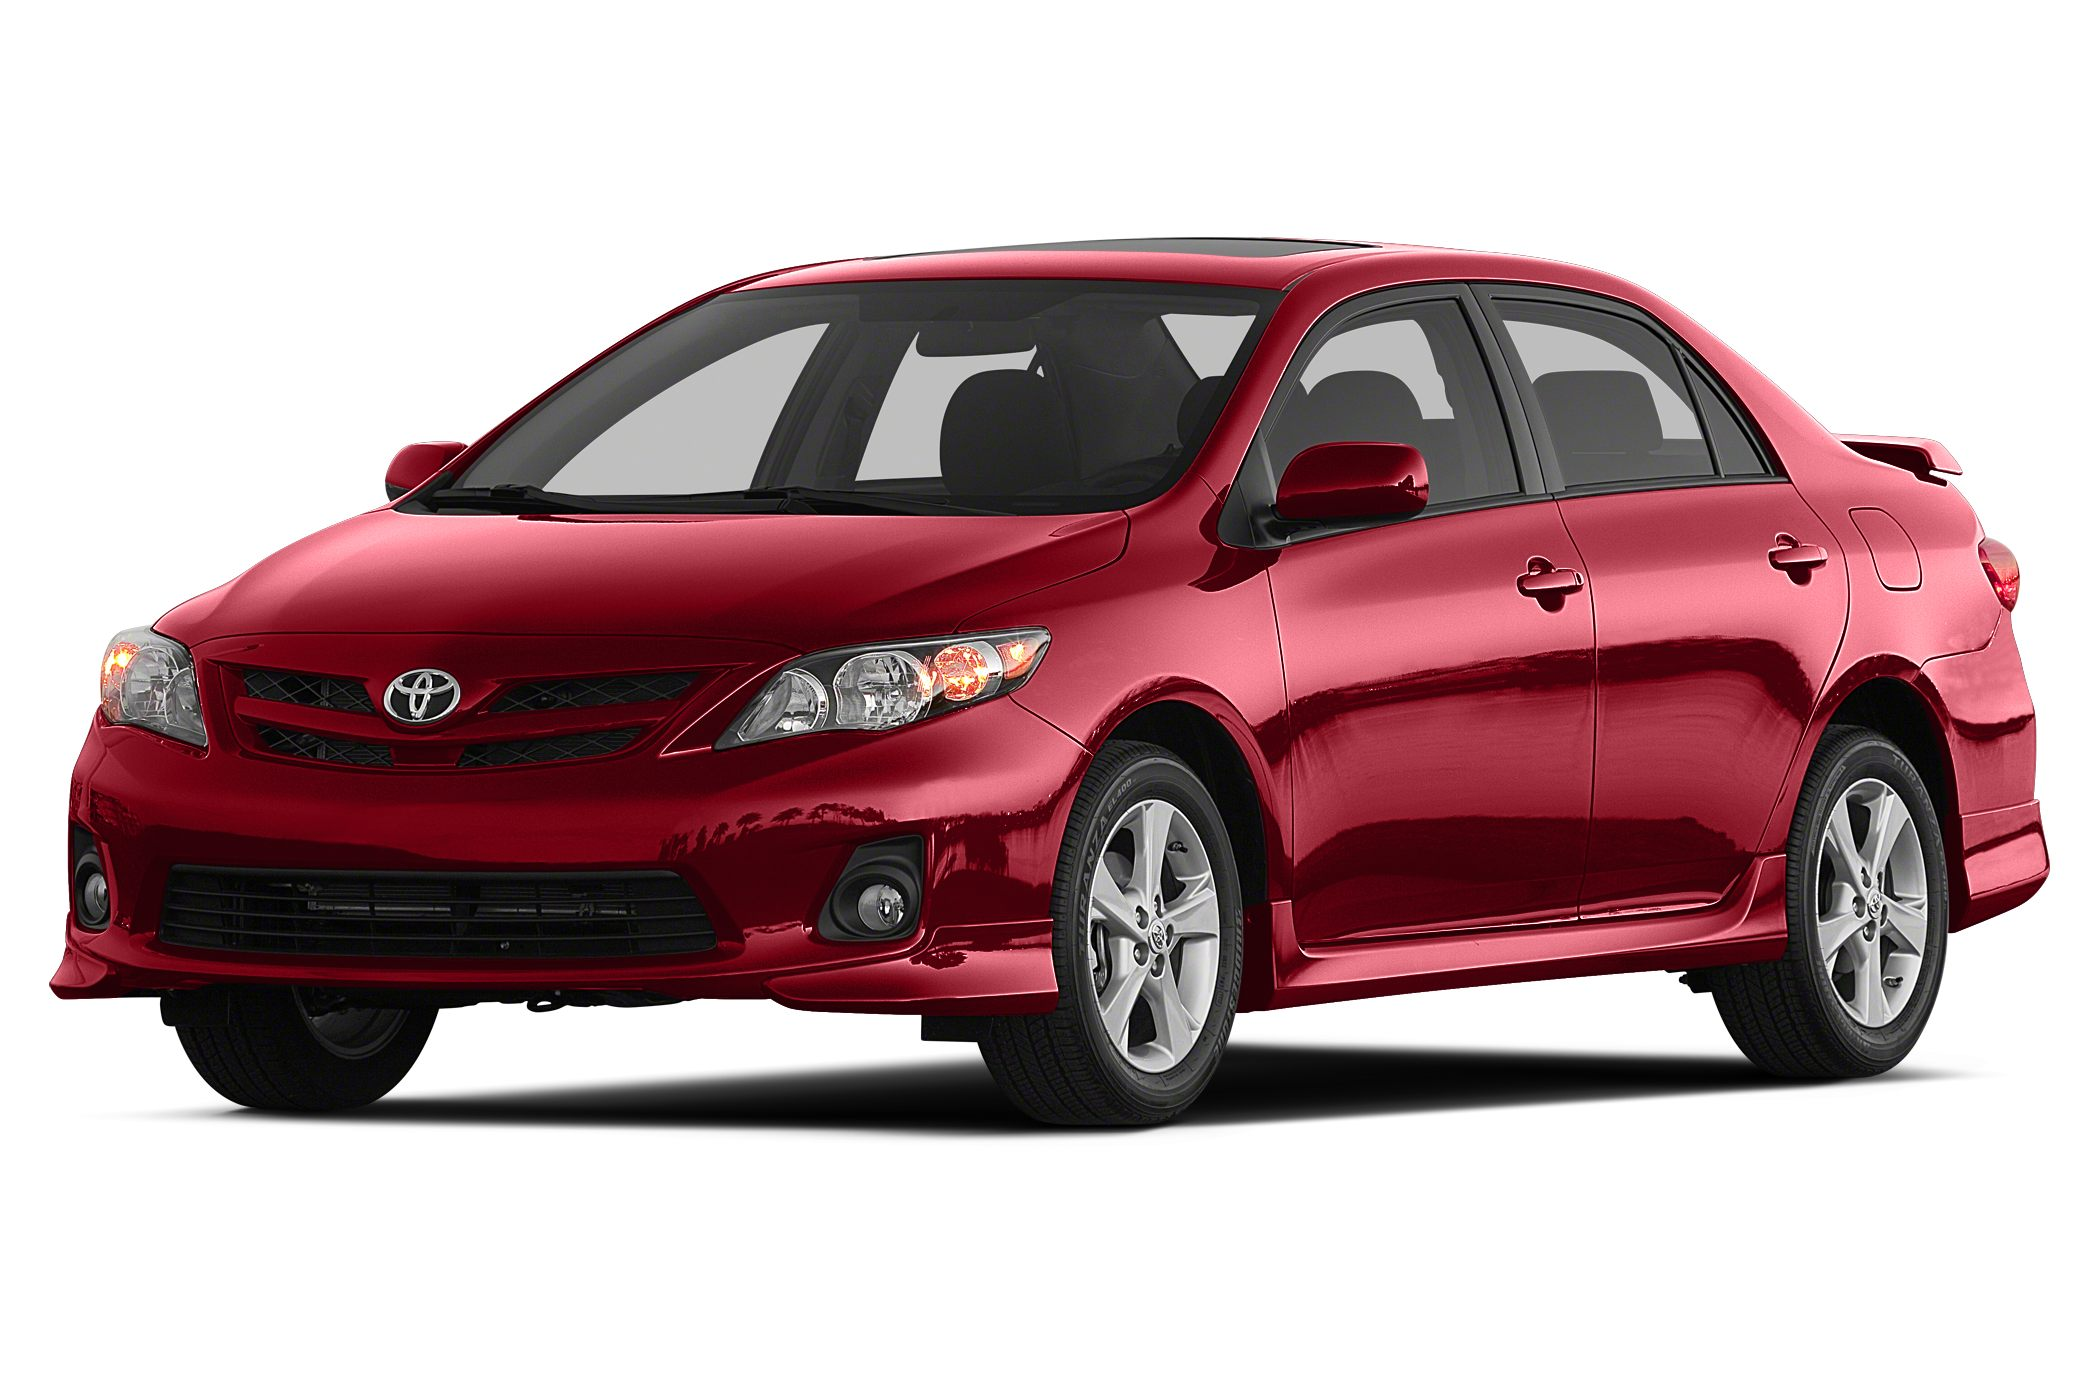 2012 Toyota Corolla S Sedan for sale in South Burlington for $15,988 with 30,794 miles